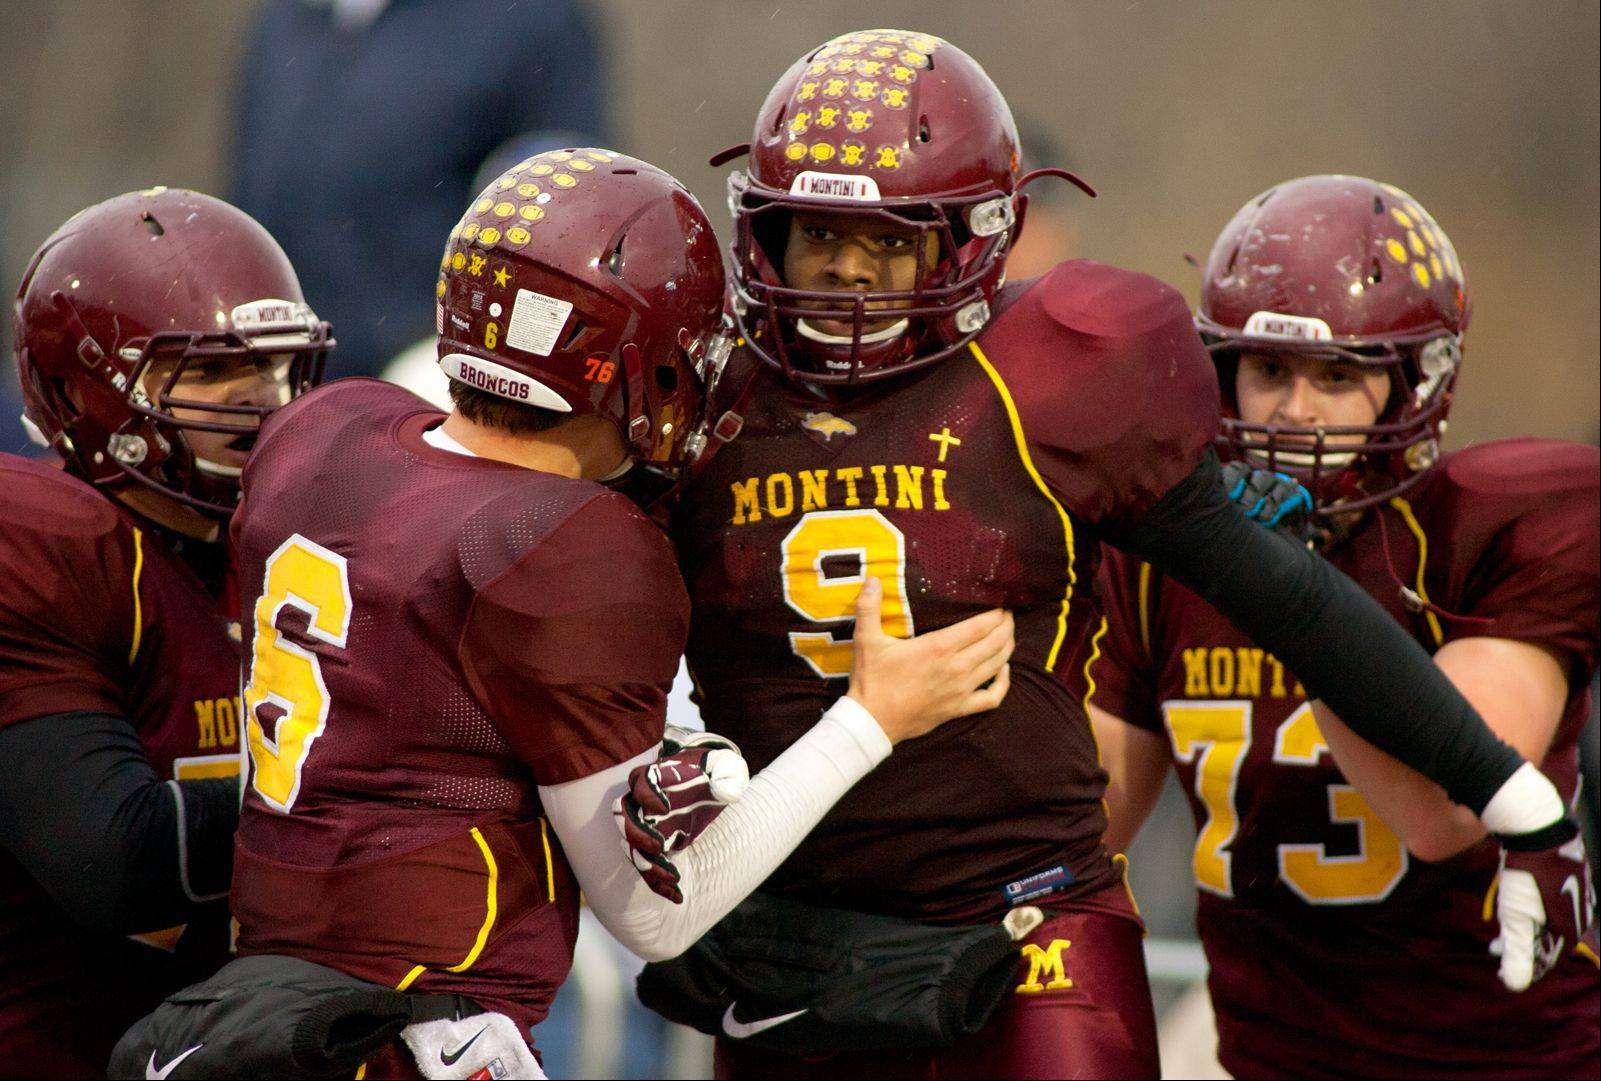 Montini Catholic's Niles Sykes (9) is mobbed by teammates after his 2-point conversion gave the Broncos a 22-21 win over Joliet Catholic.